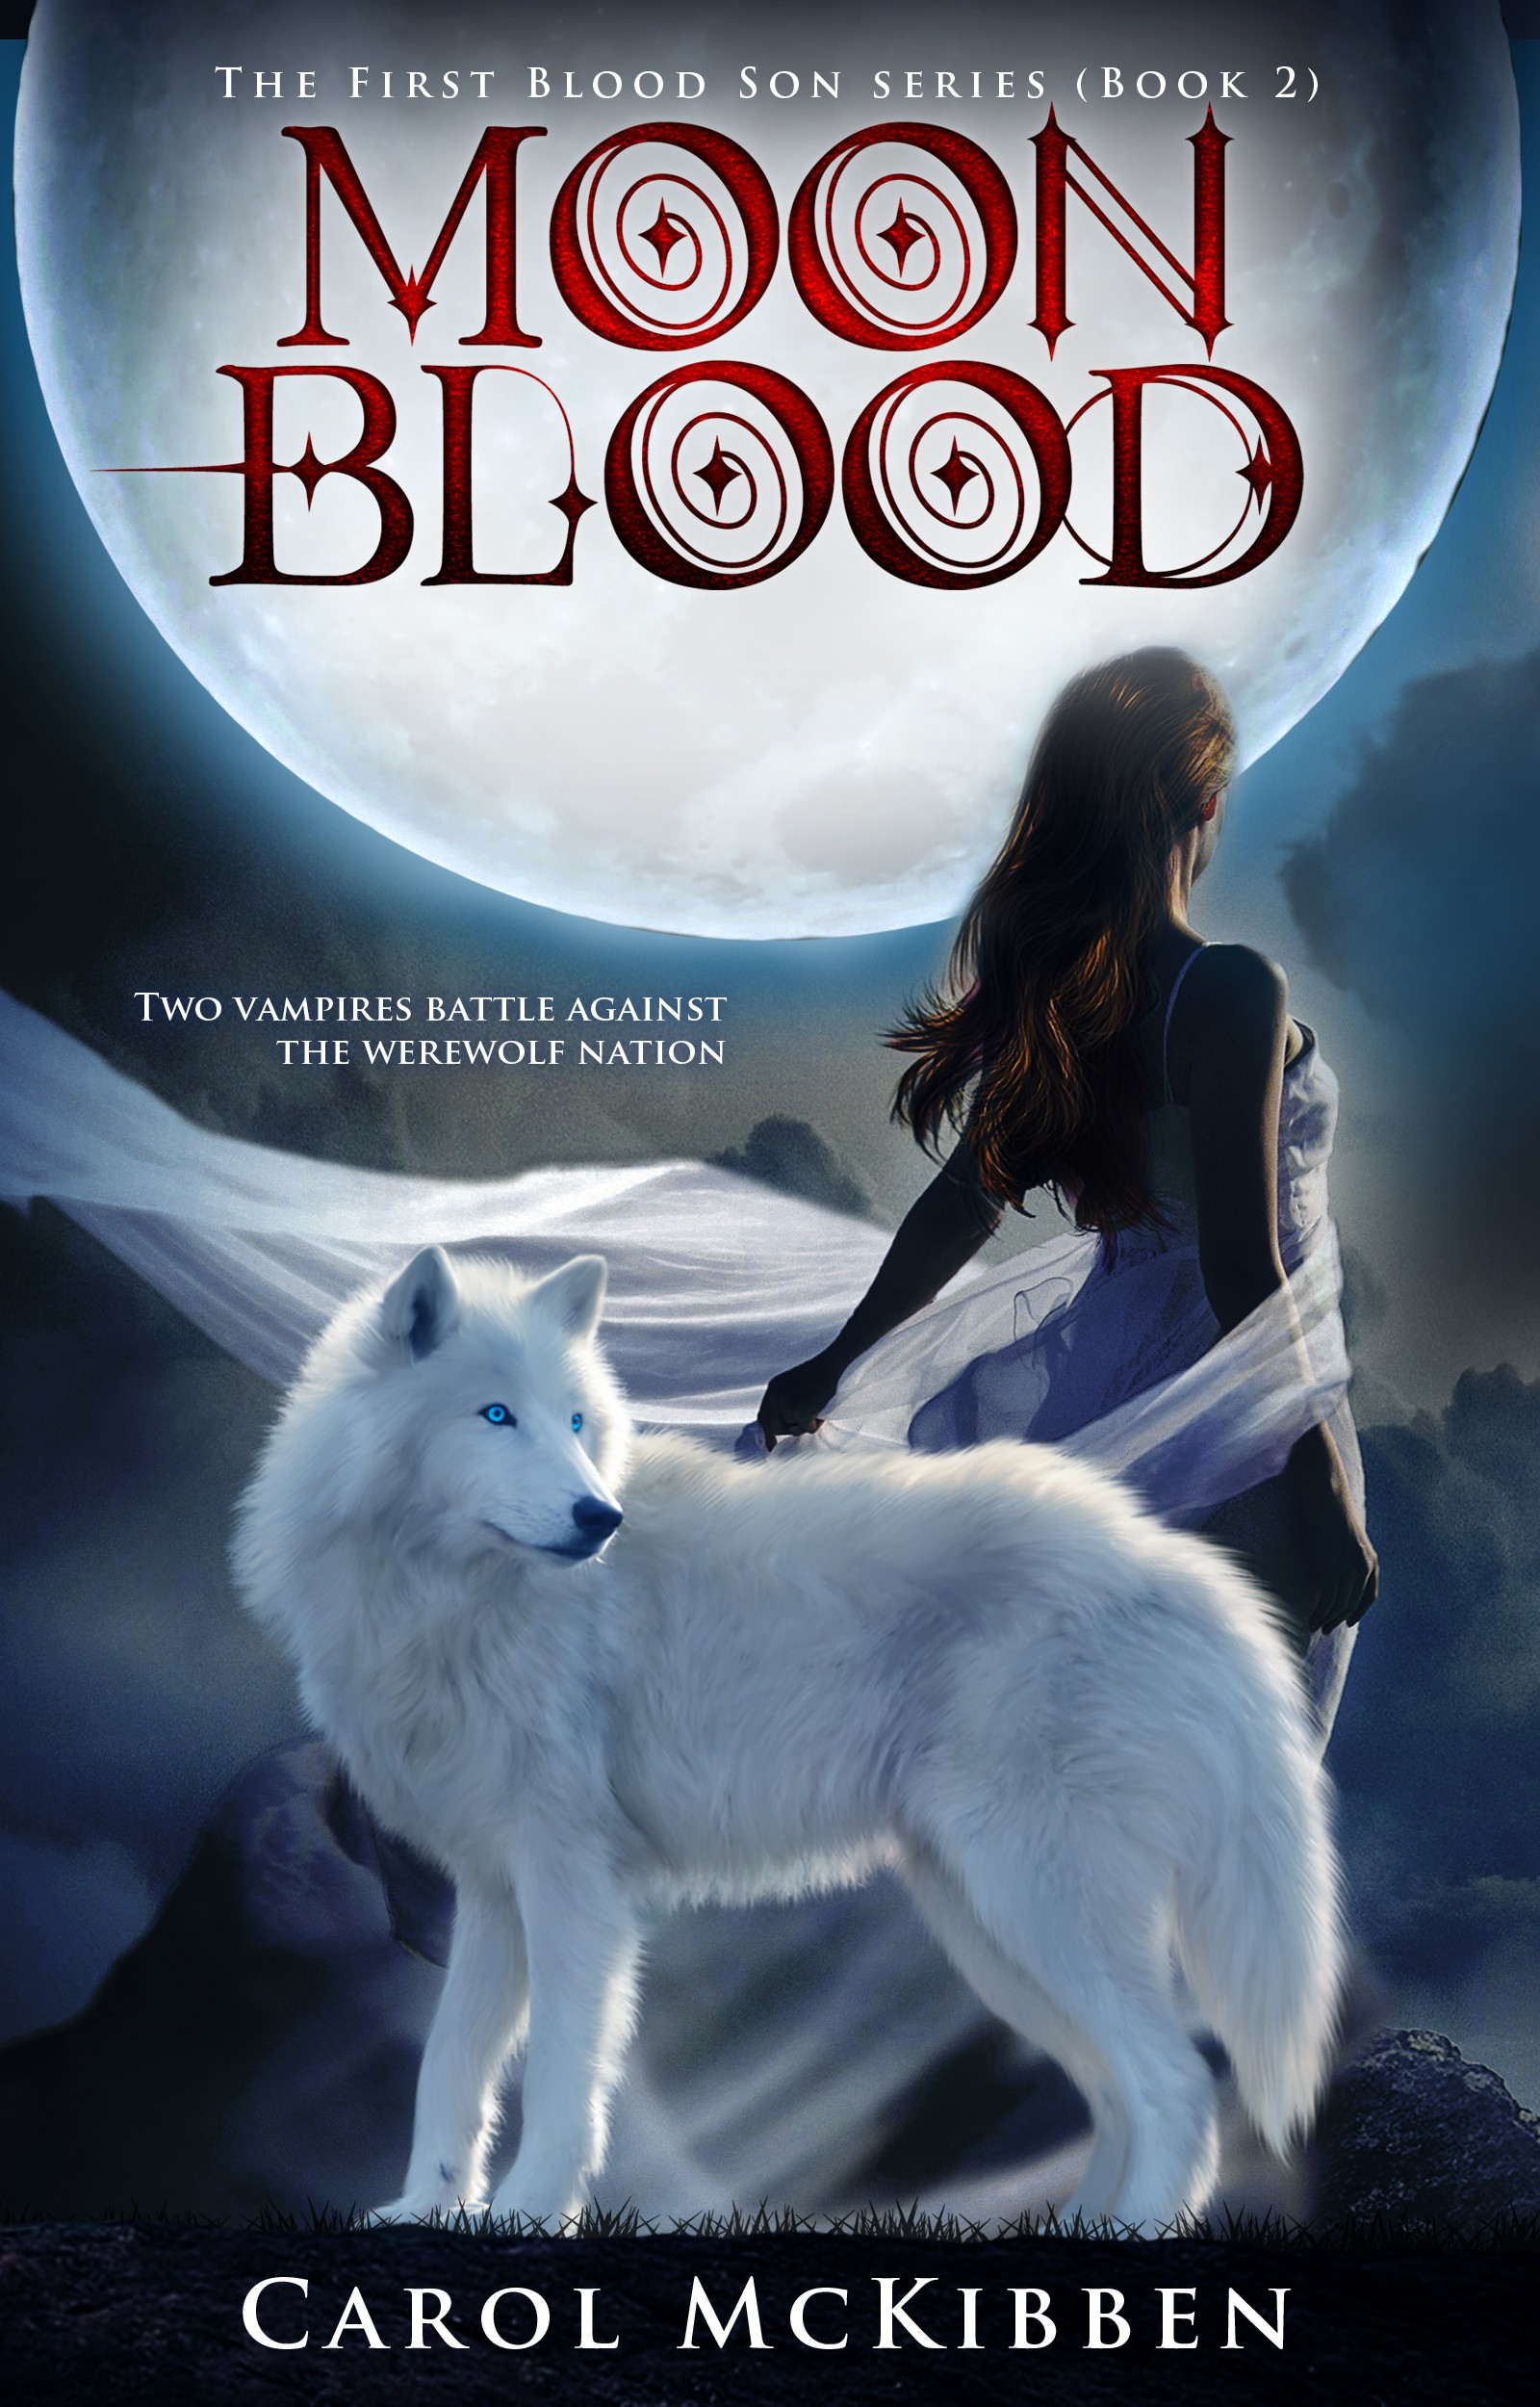 Book Cover needed for Moon Blood (a paranormal fiction)